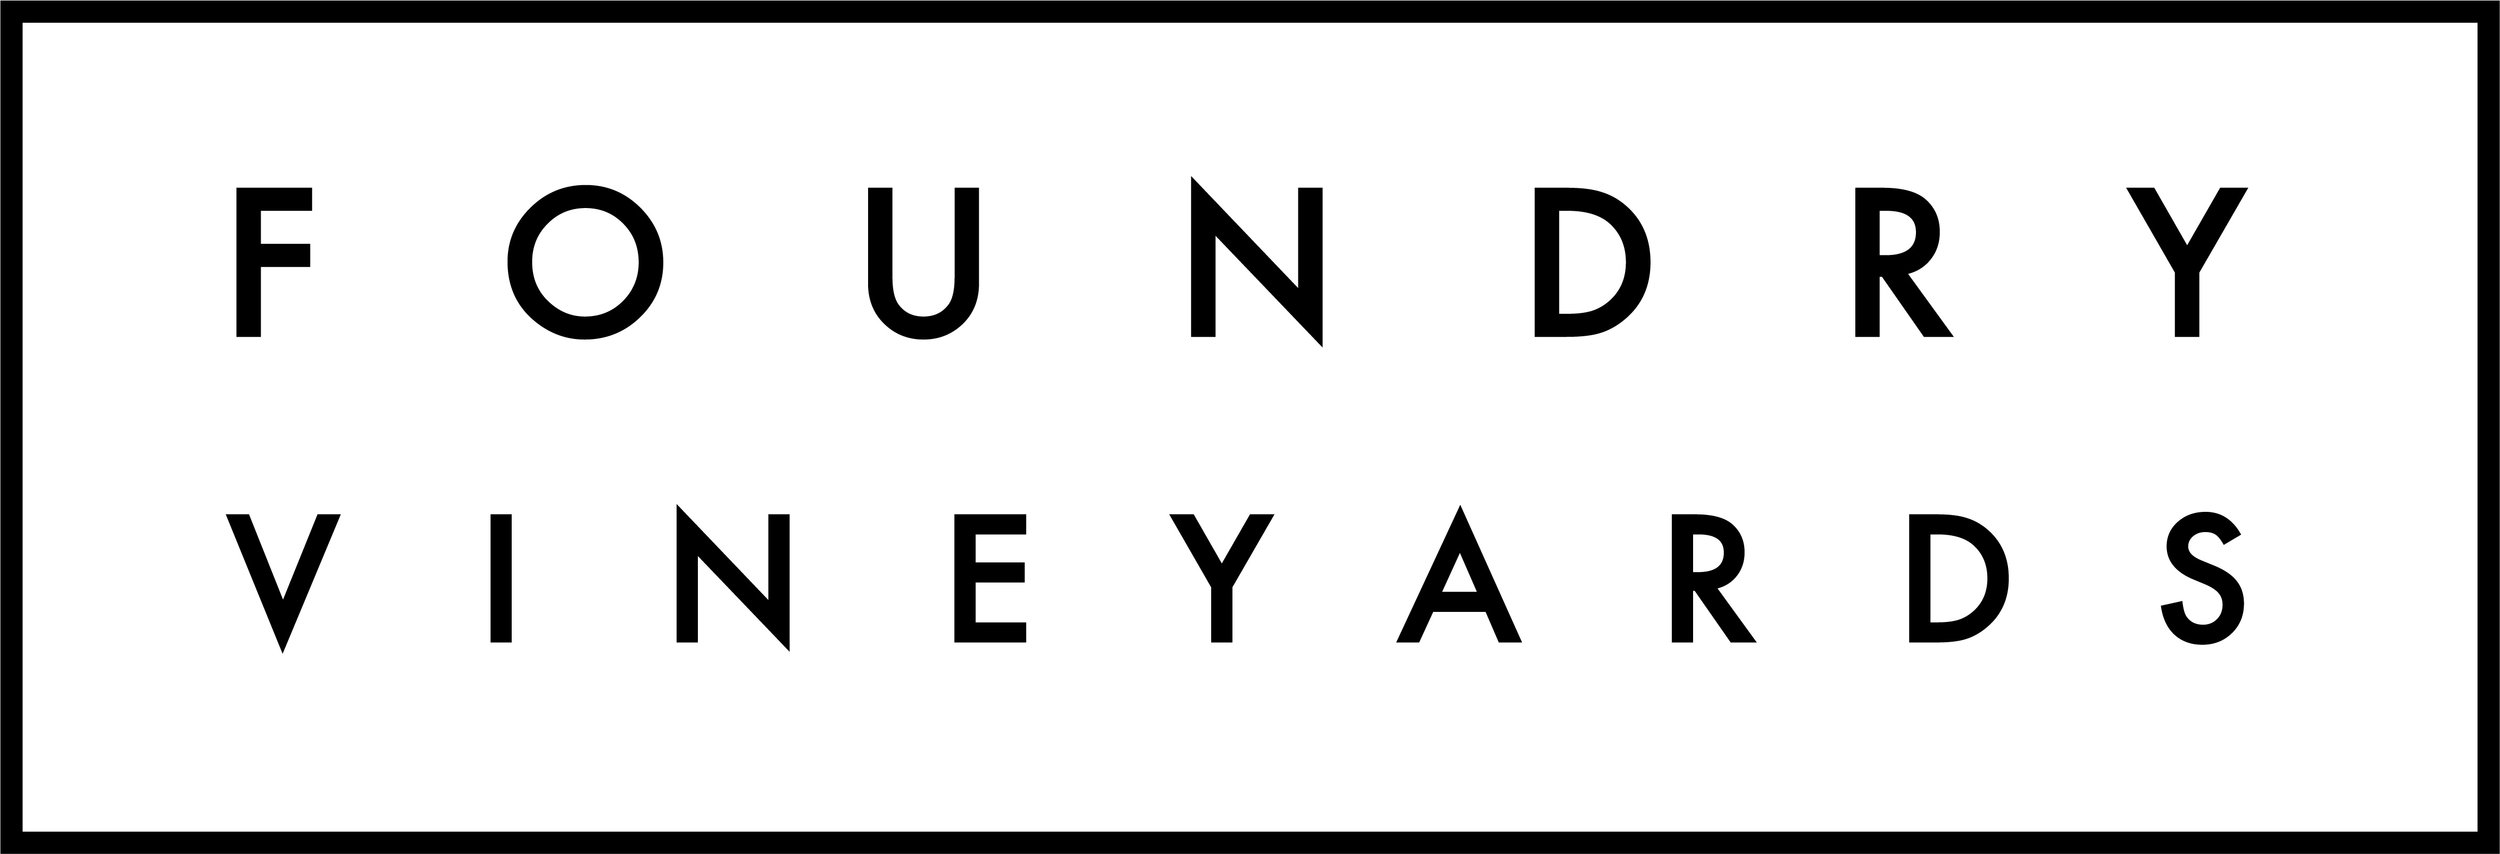 Foundry Vineyards_logo_white backgroung.jpg